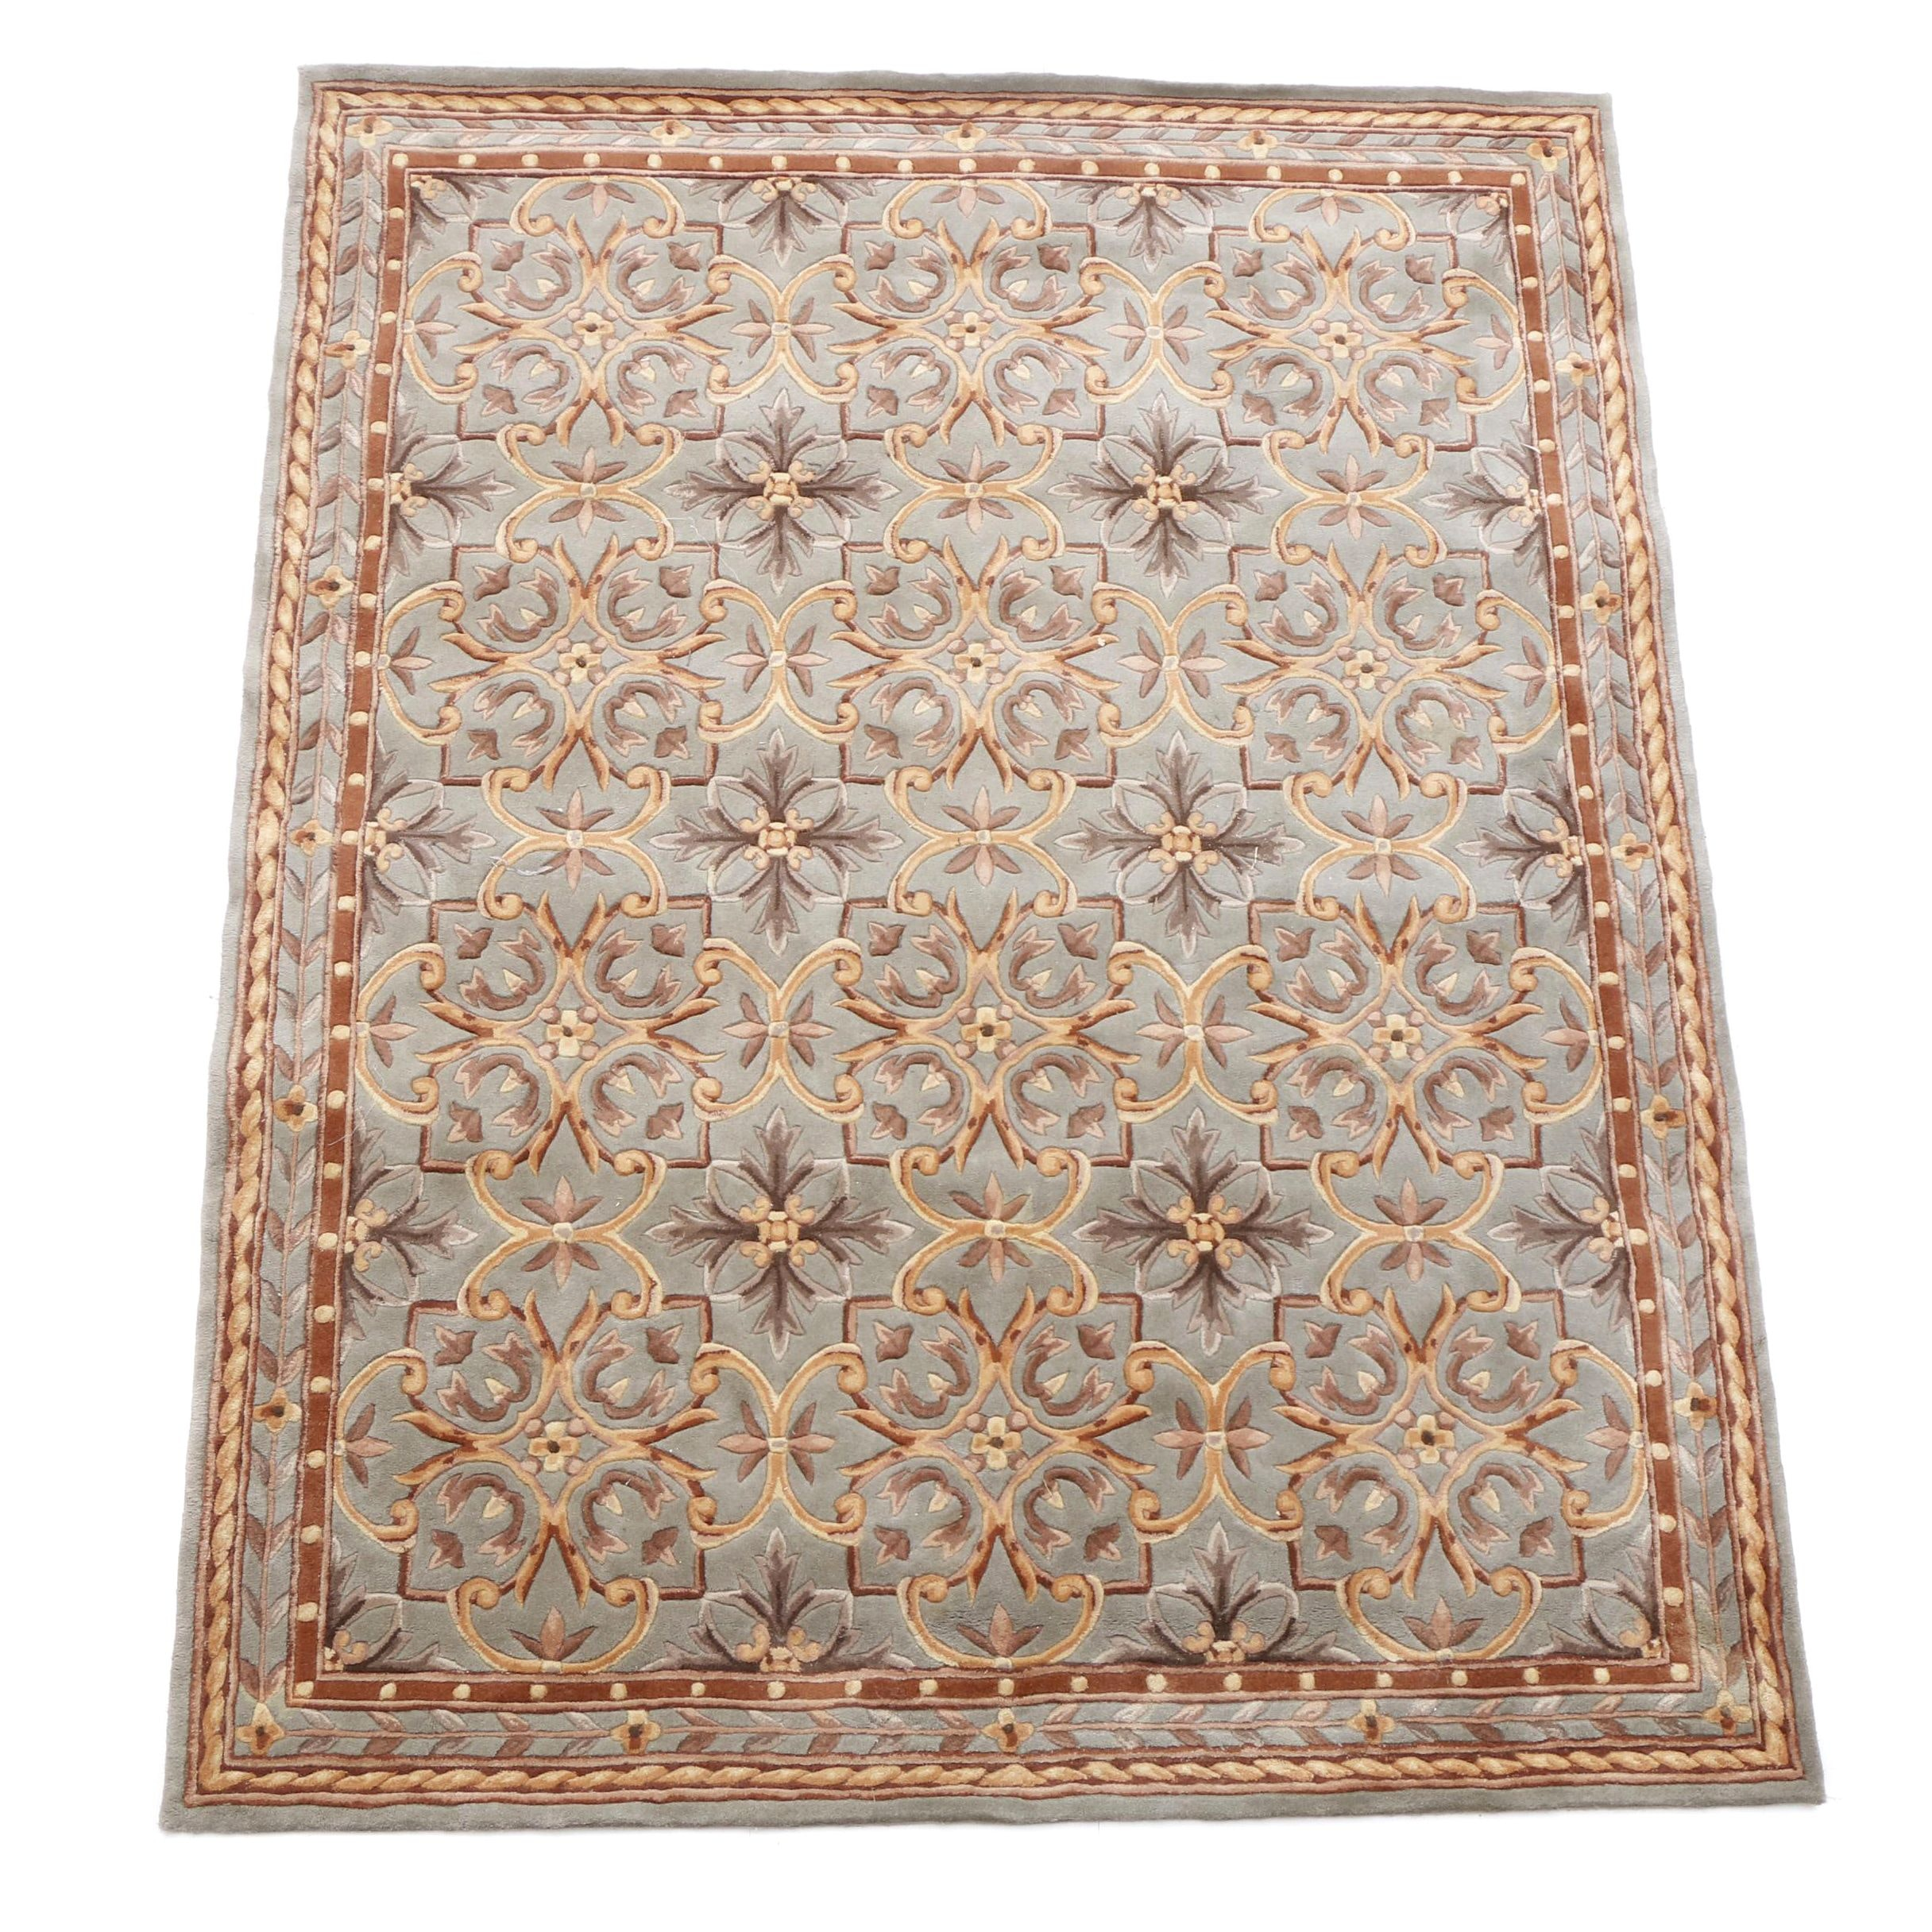 Contemporary Tufted Chinese Area Rug